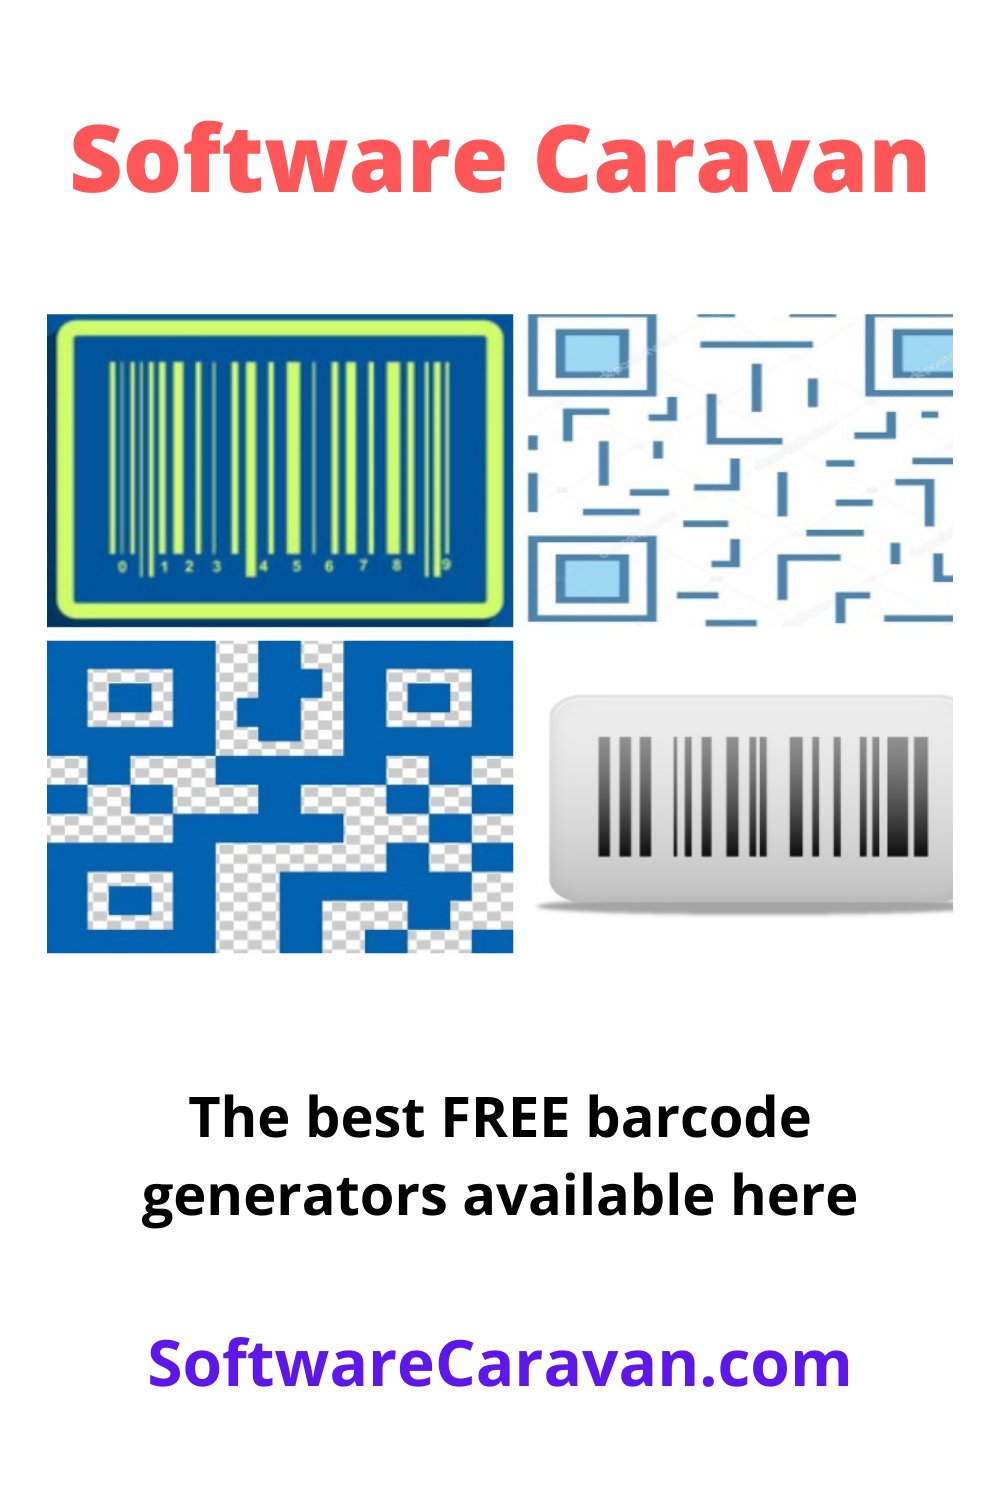 The Best Free Barcode Generators Available Barcode Generator Barcode Useful Life Hacks